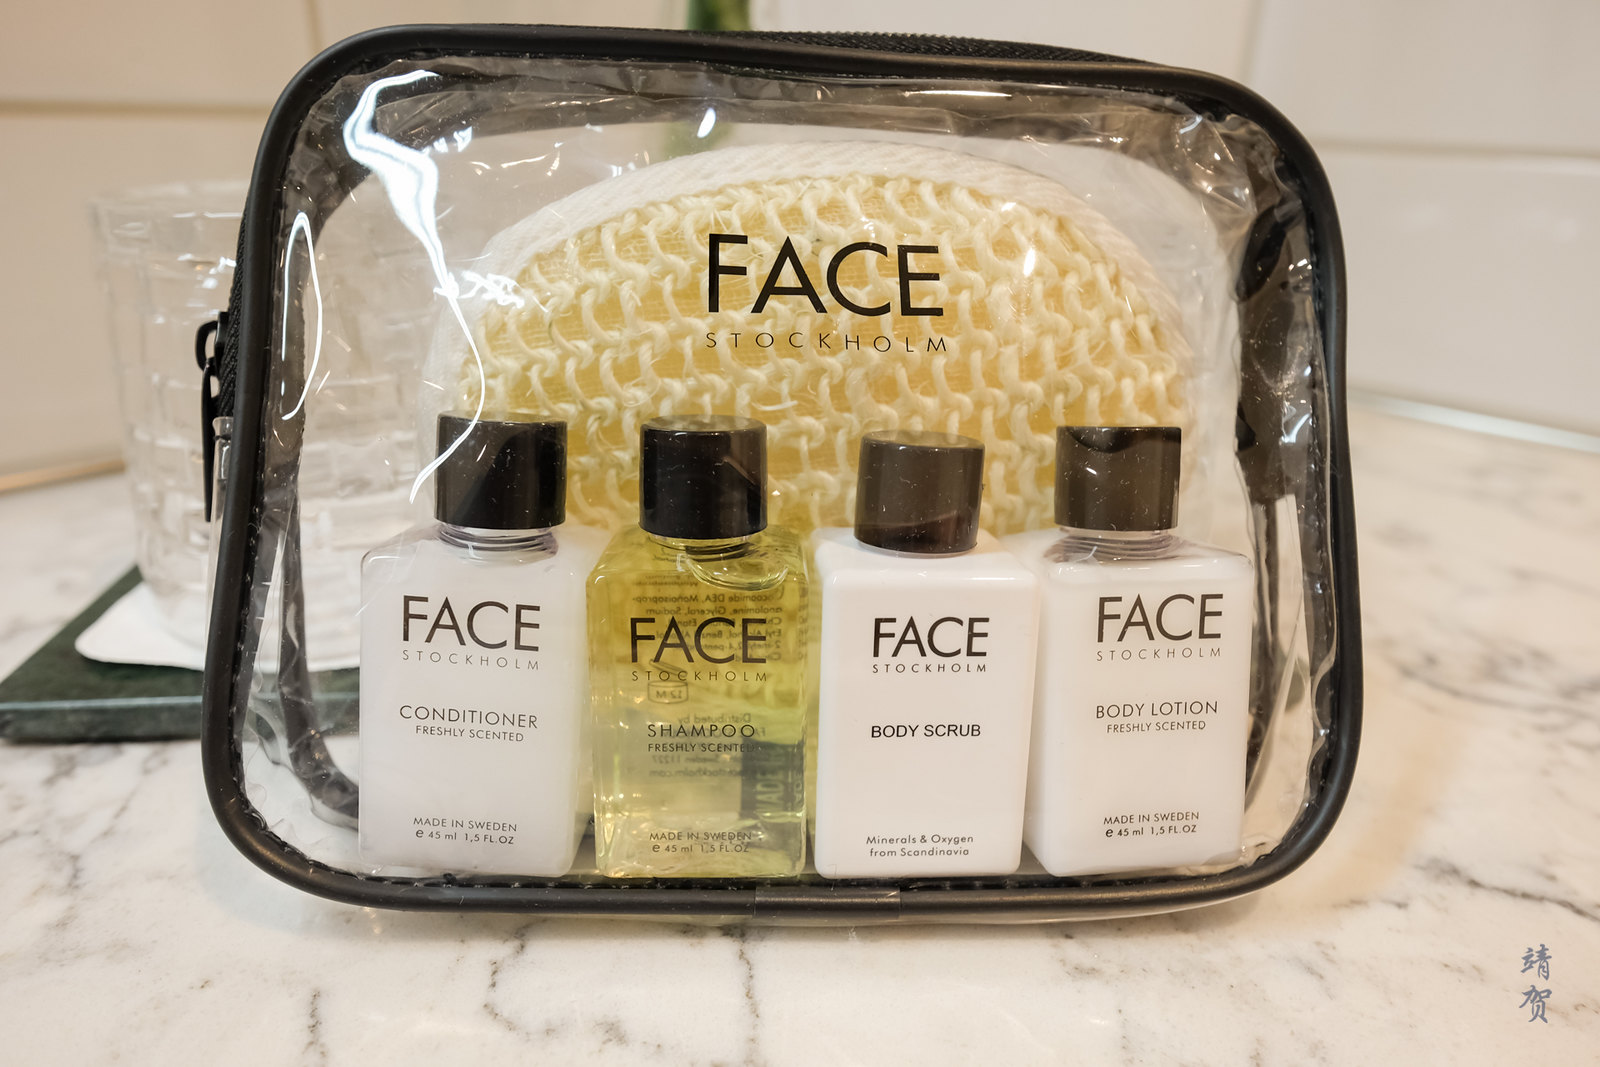 FACE amenity kit